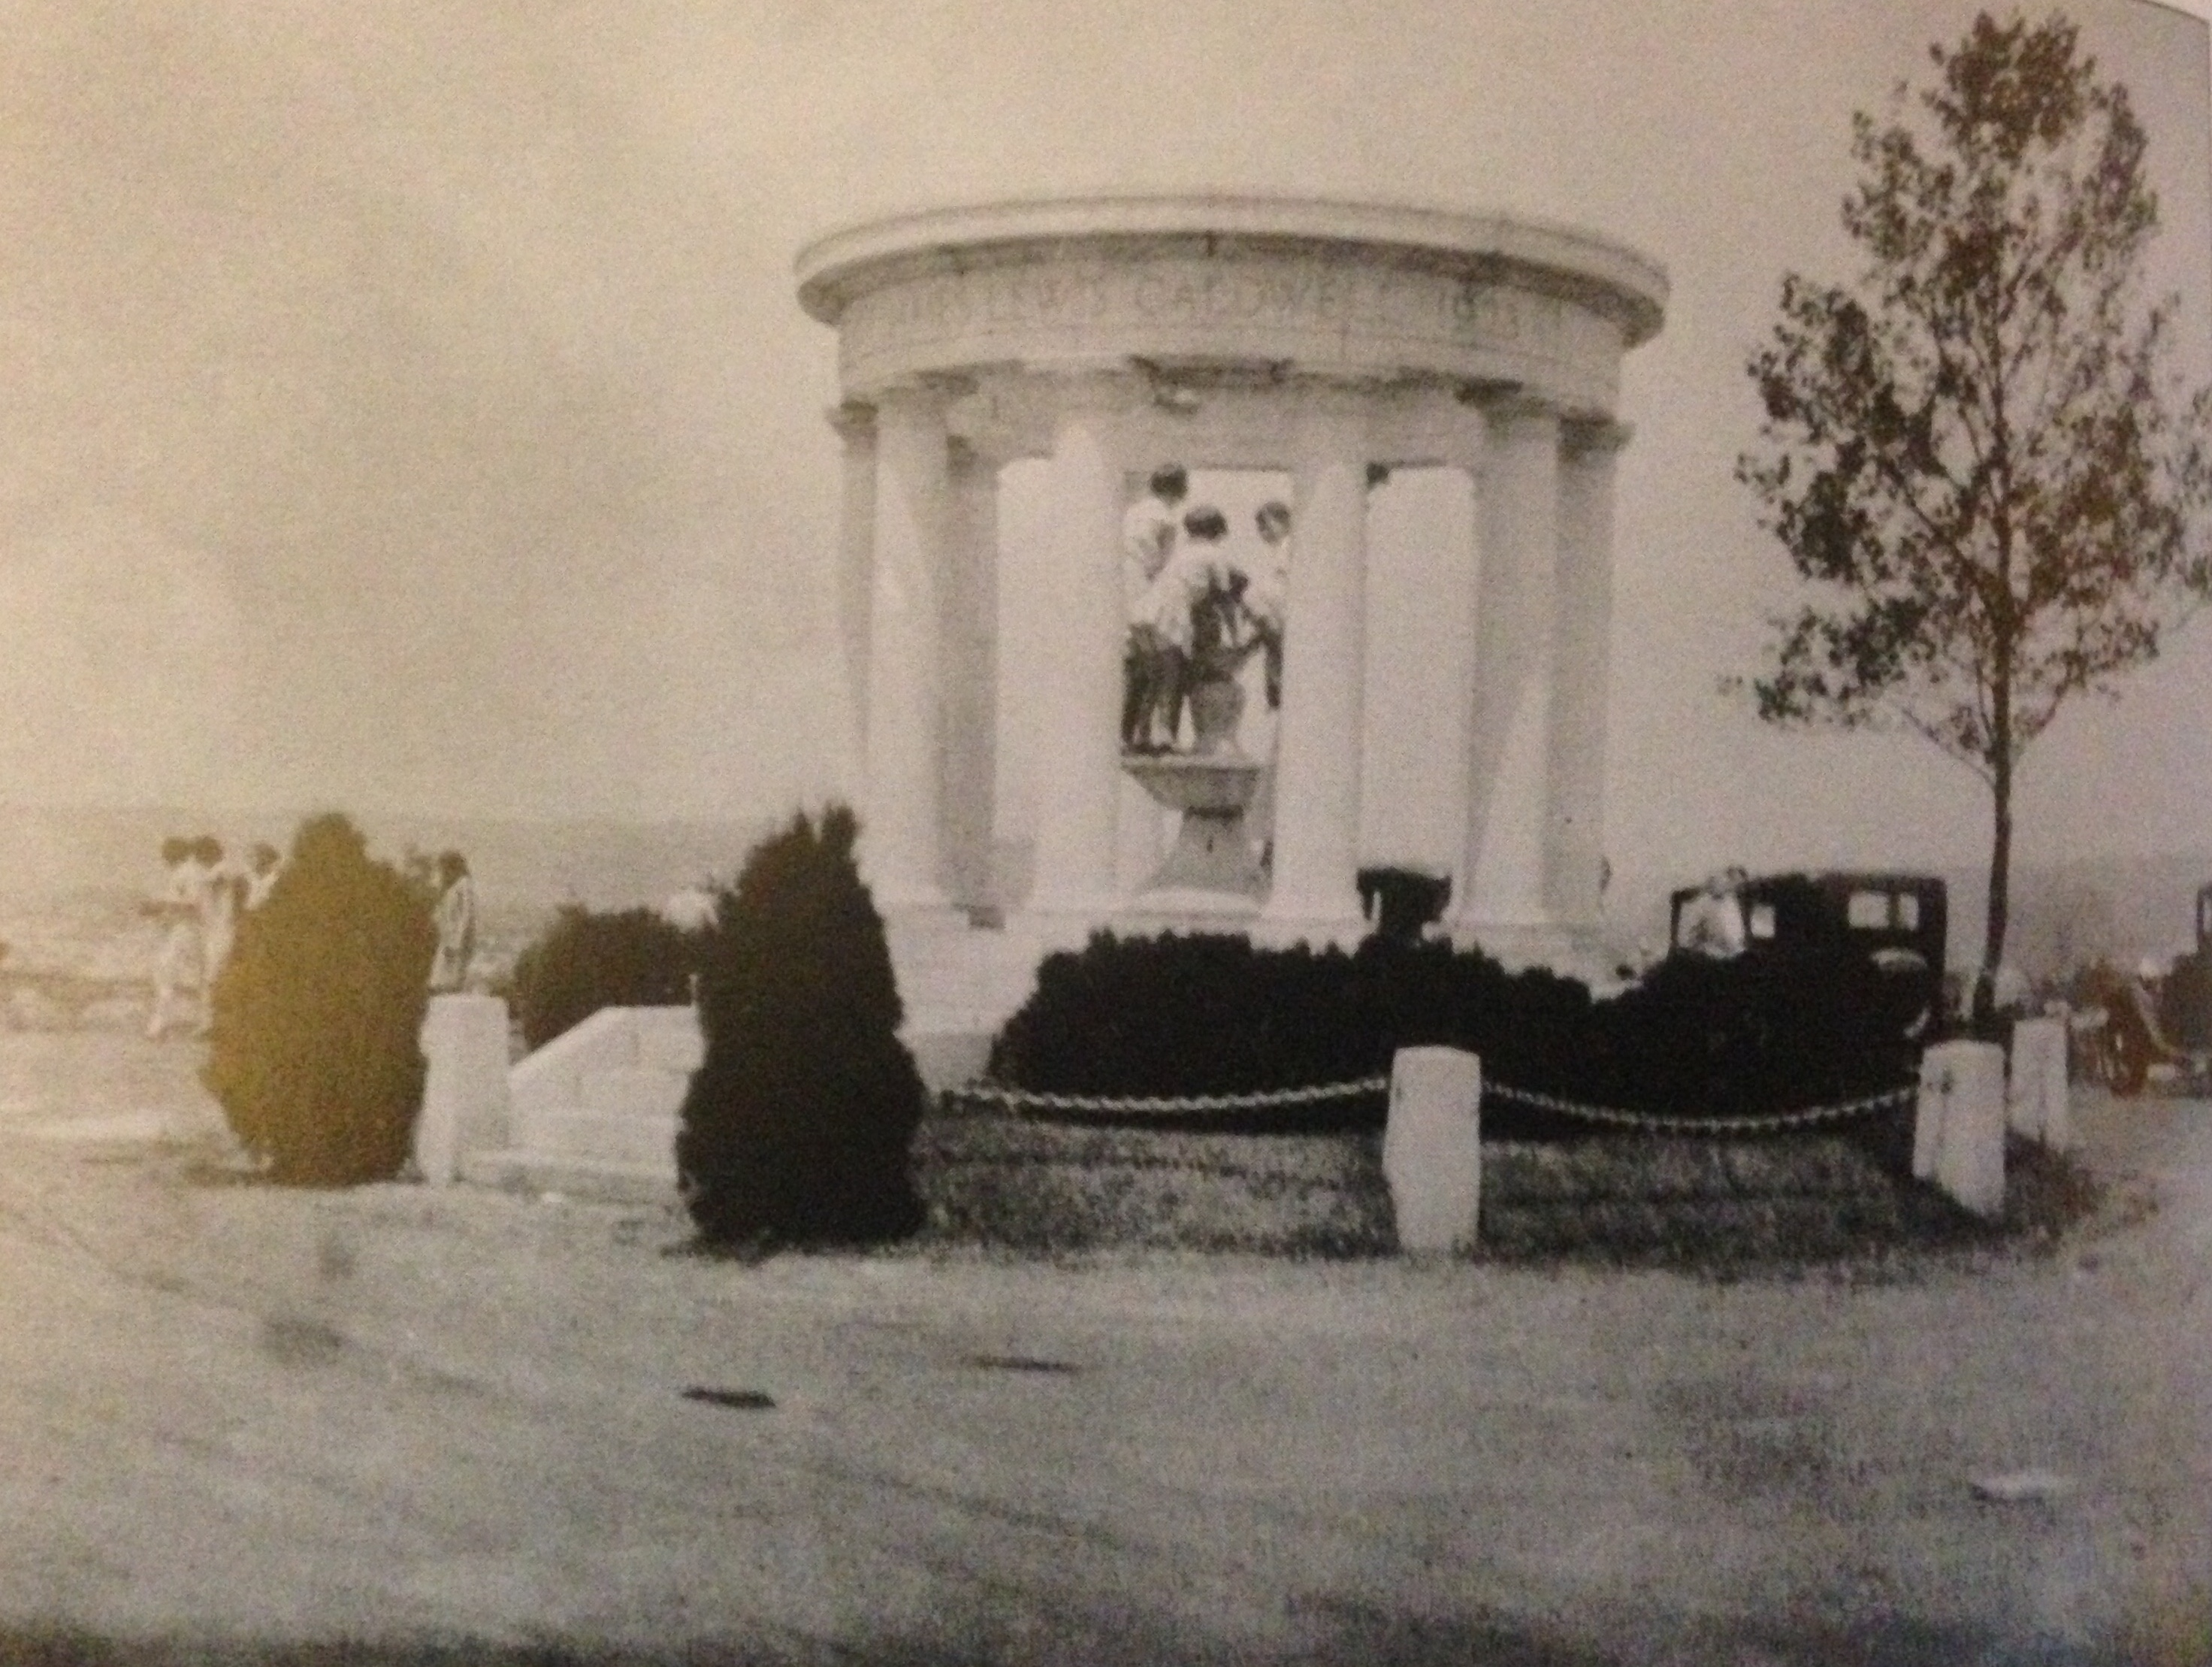 James Lewis Caldwell Memorial, formerly located atop Gobblers Nob, erected in 1926, demolished in 1945.